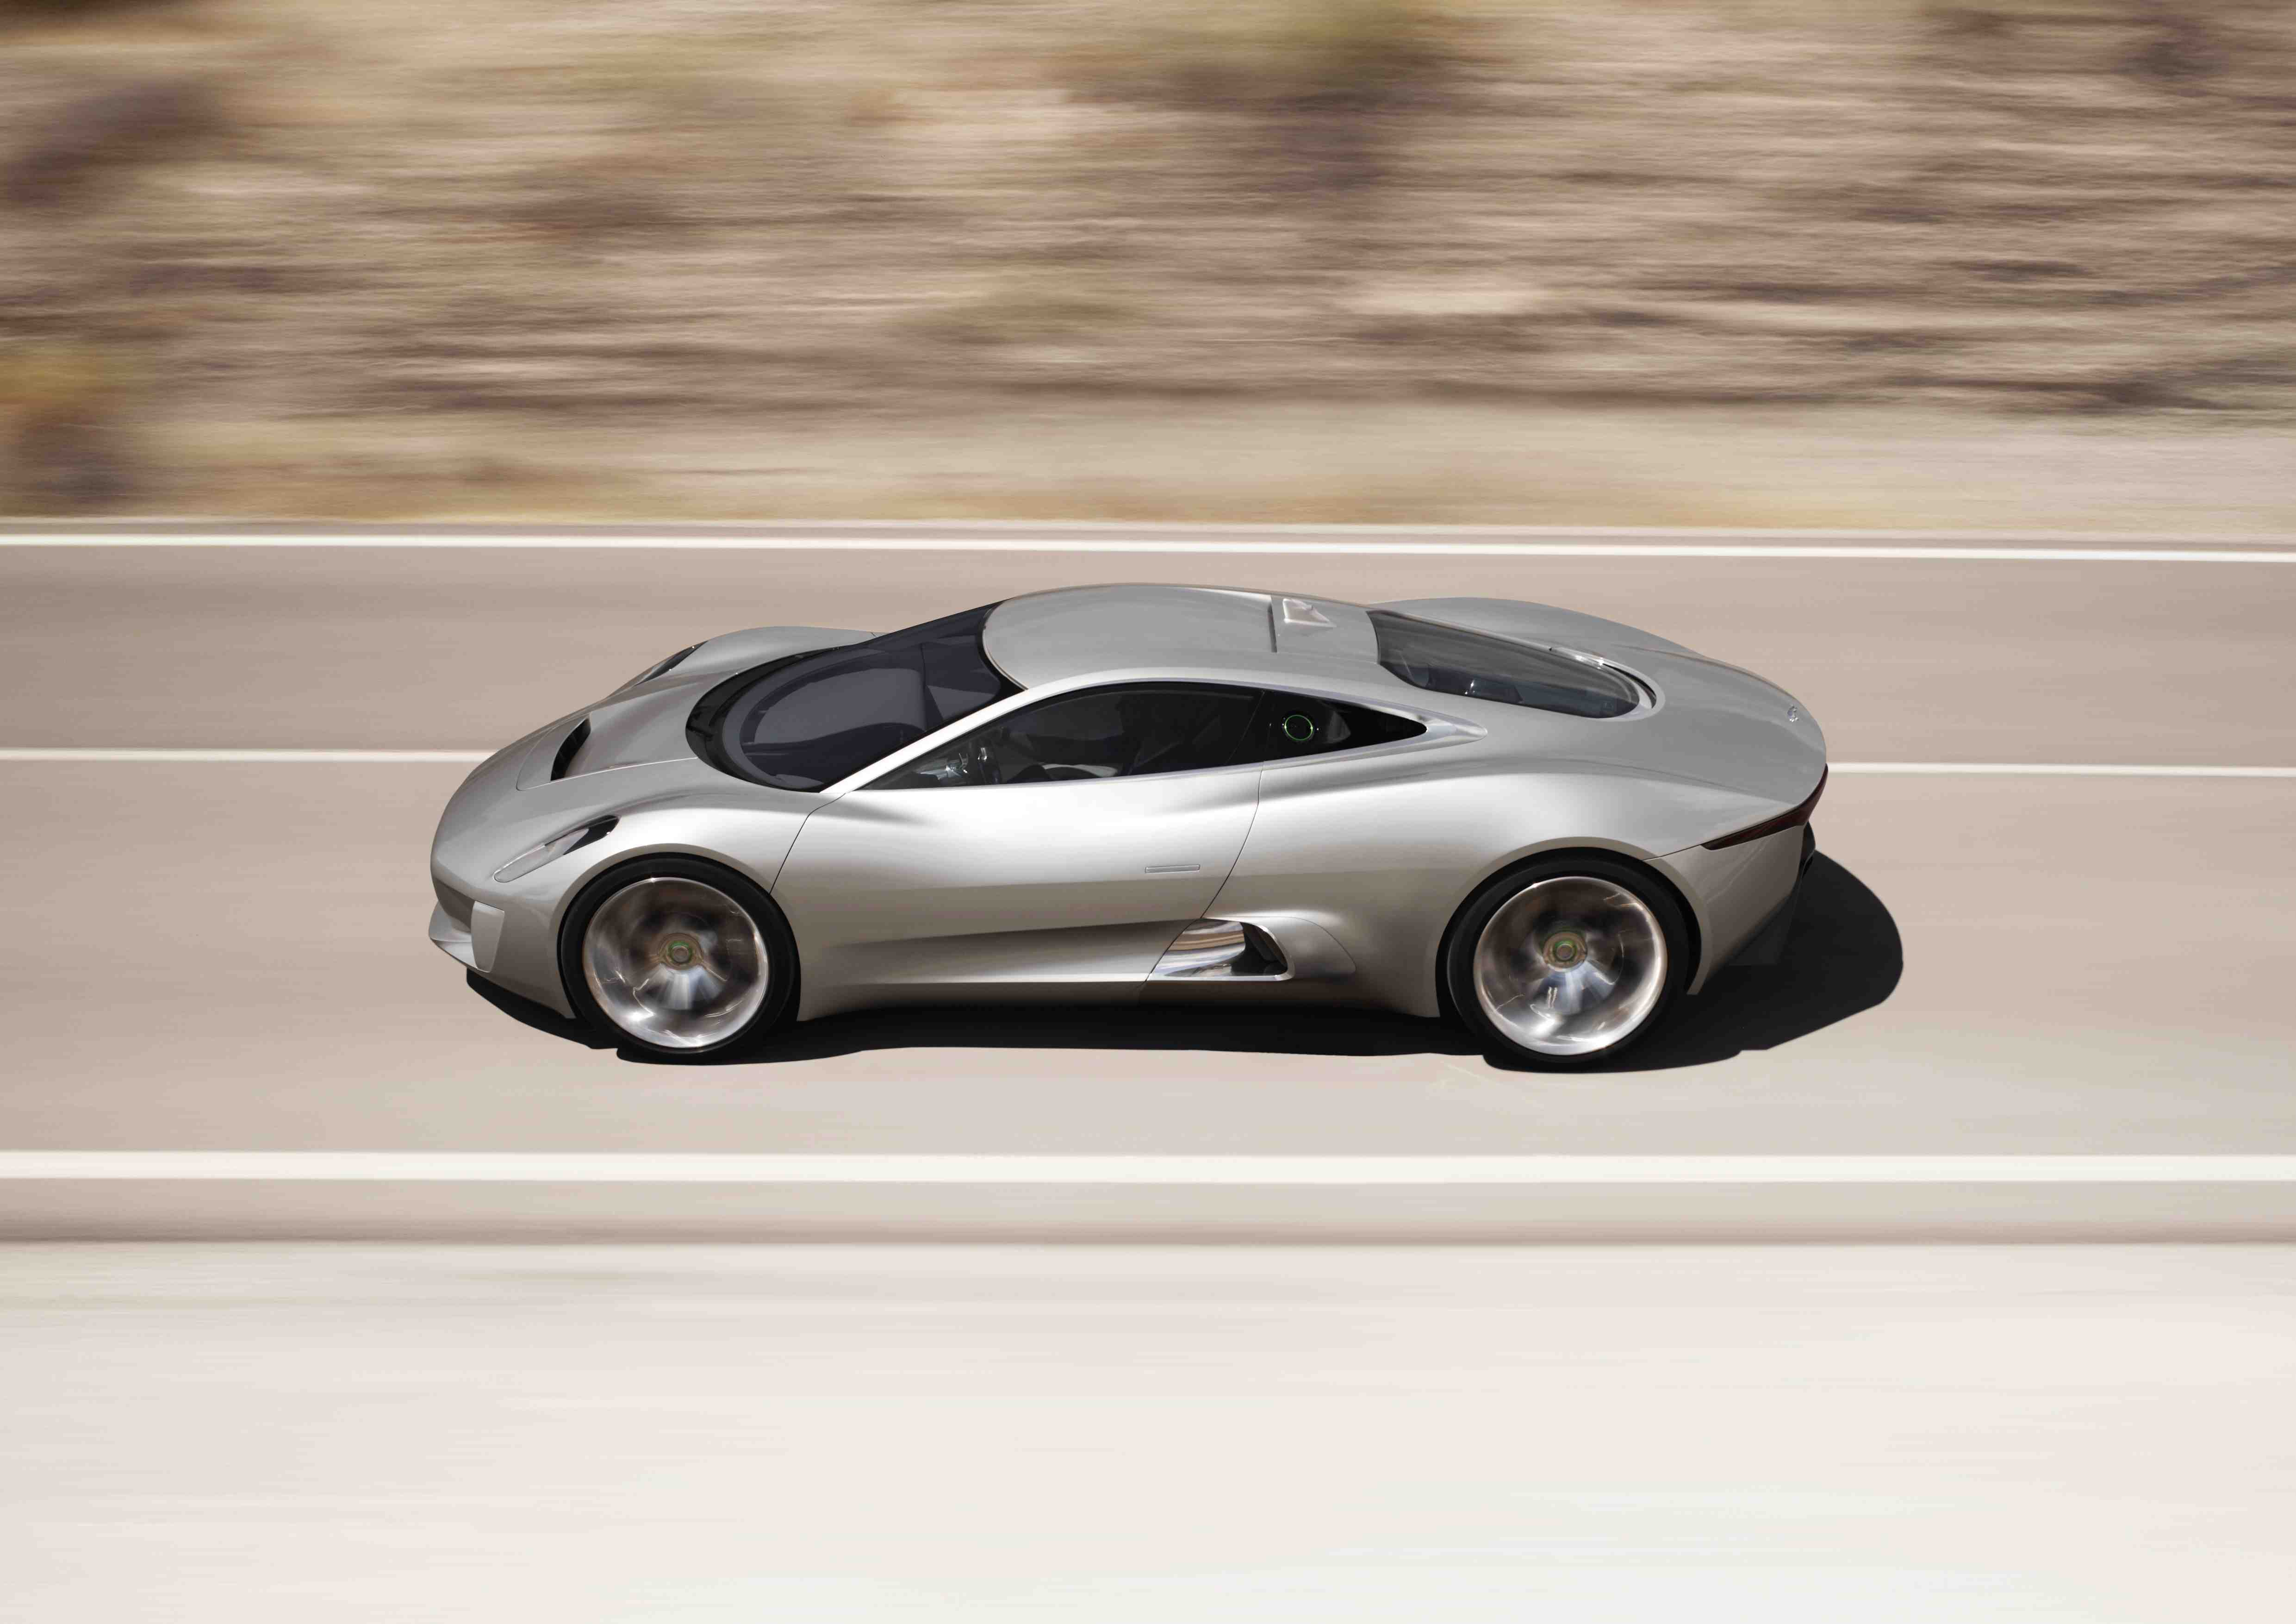 Jaguar C-X75 top speed (205 mph)